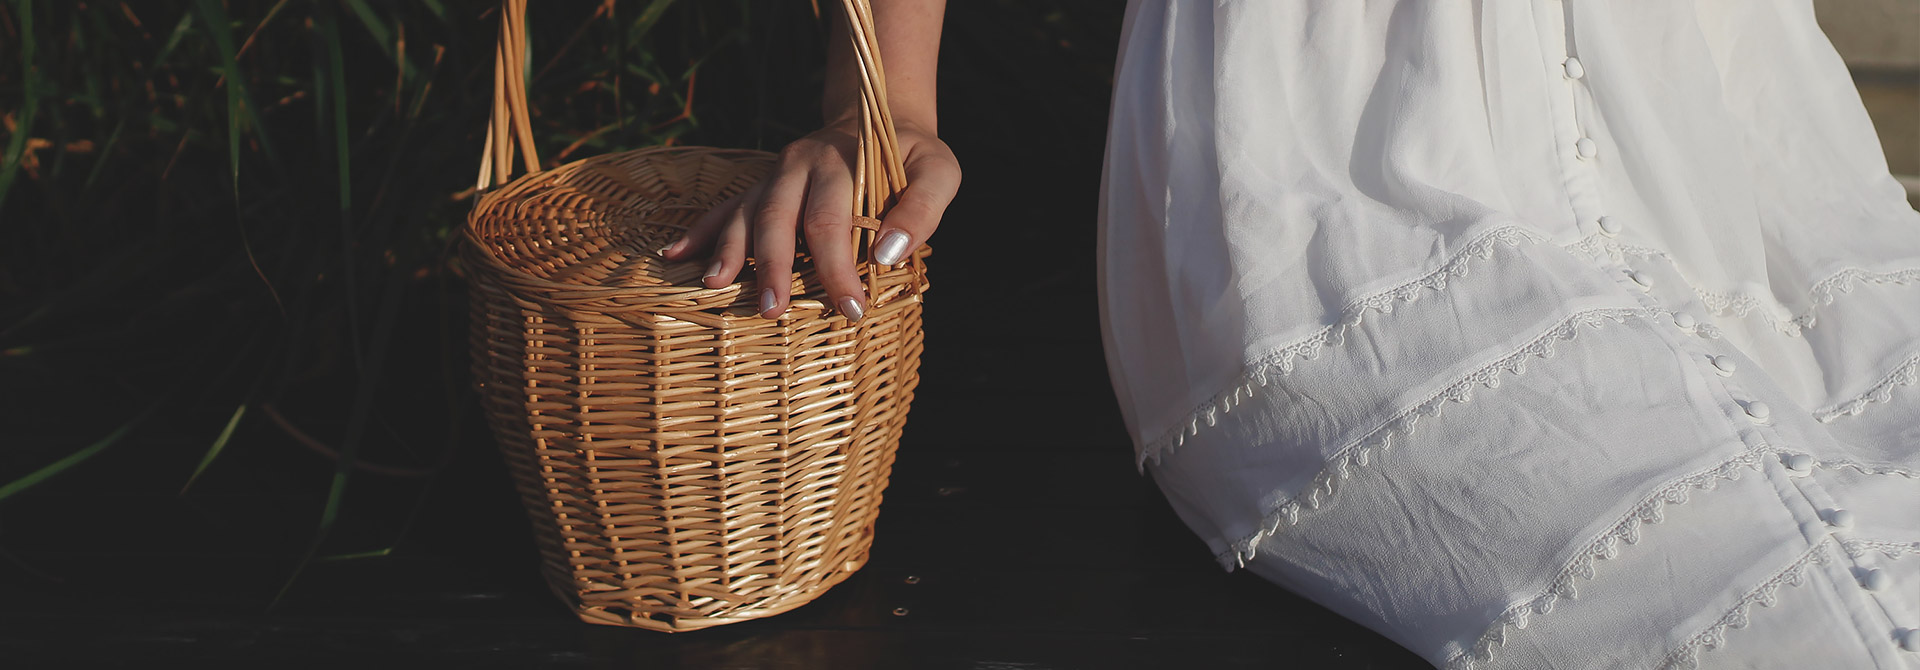 woman in white dress holding a wicker basket